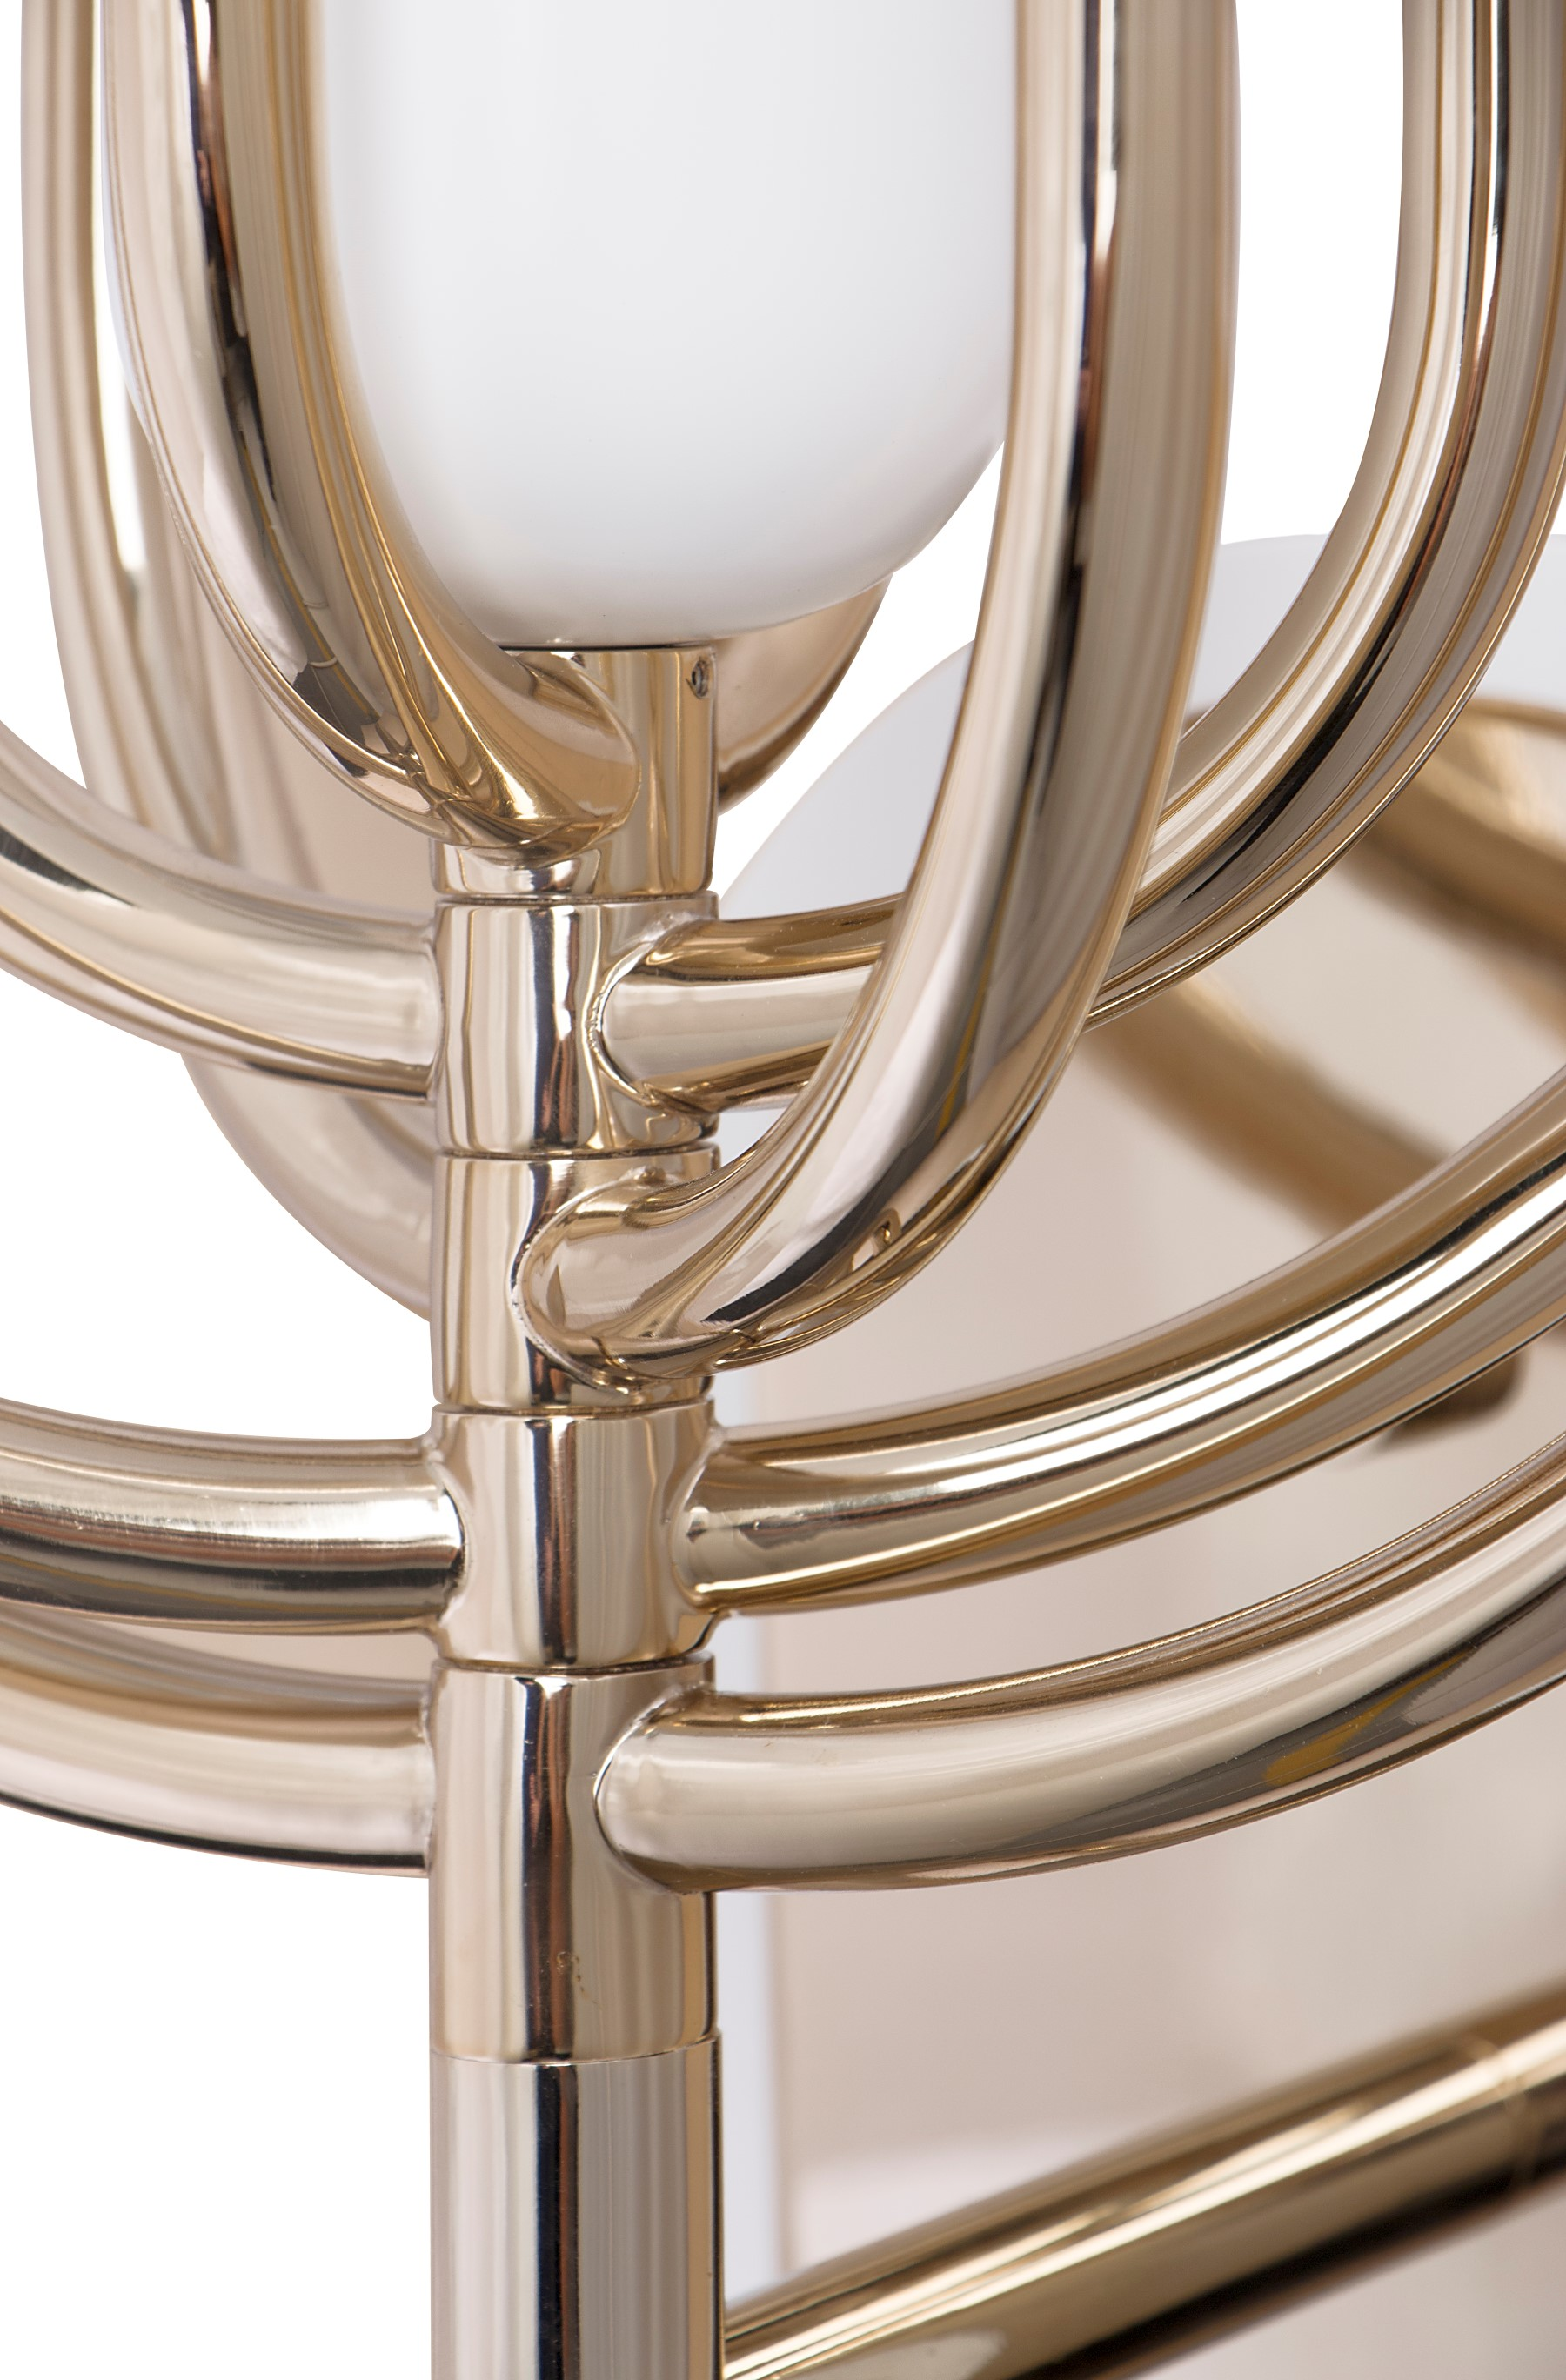 The Sinuous Moves Of The Heritage Lighting Collection 8 heritage lighting collection The Sinuous Moves Of The Heritage Lighting Collection The Sinuous Moves Of The Heritage Lighting Collection 8